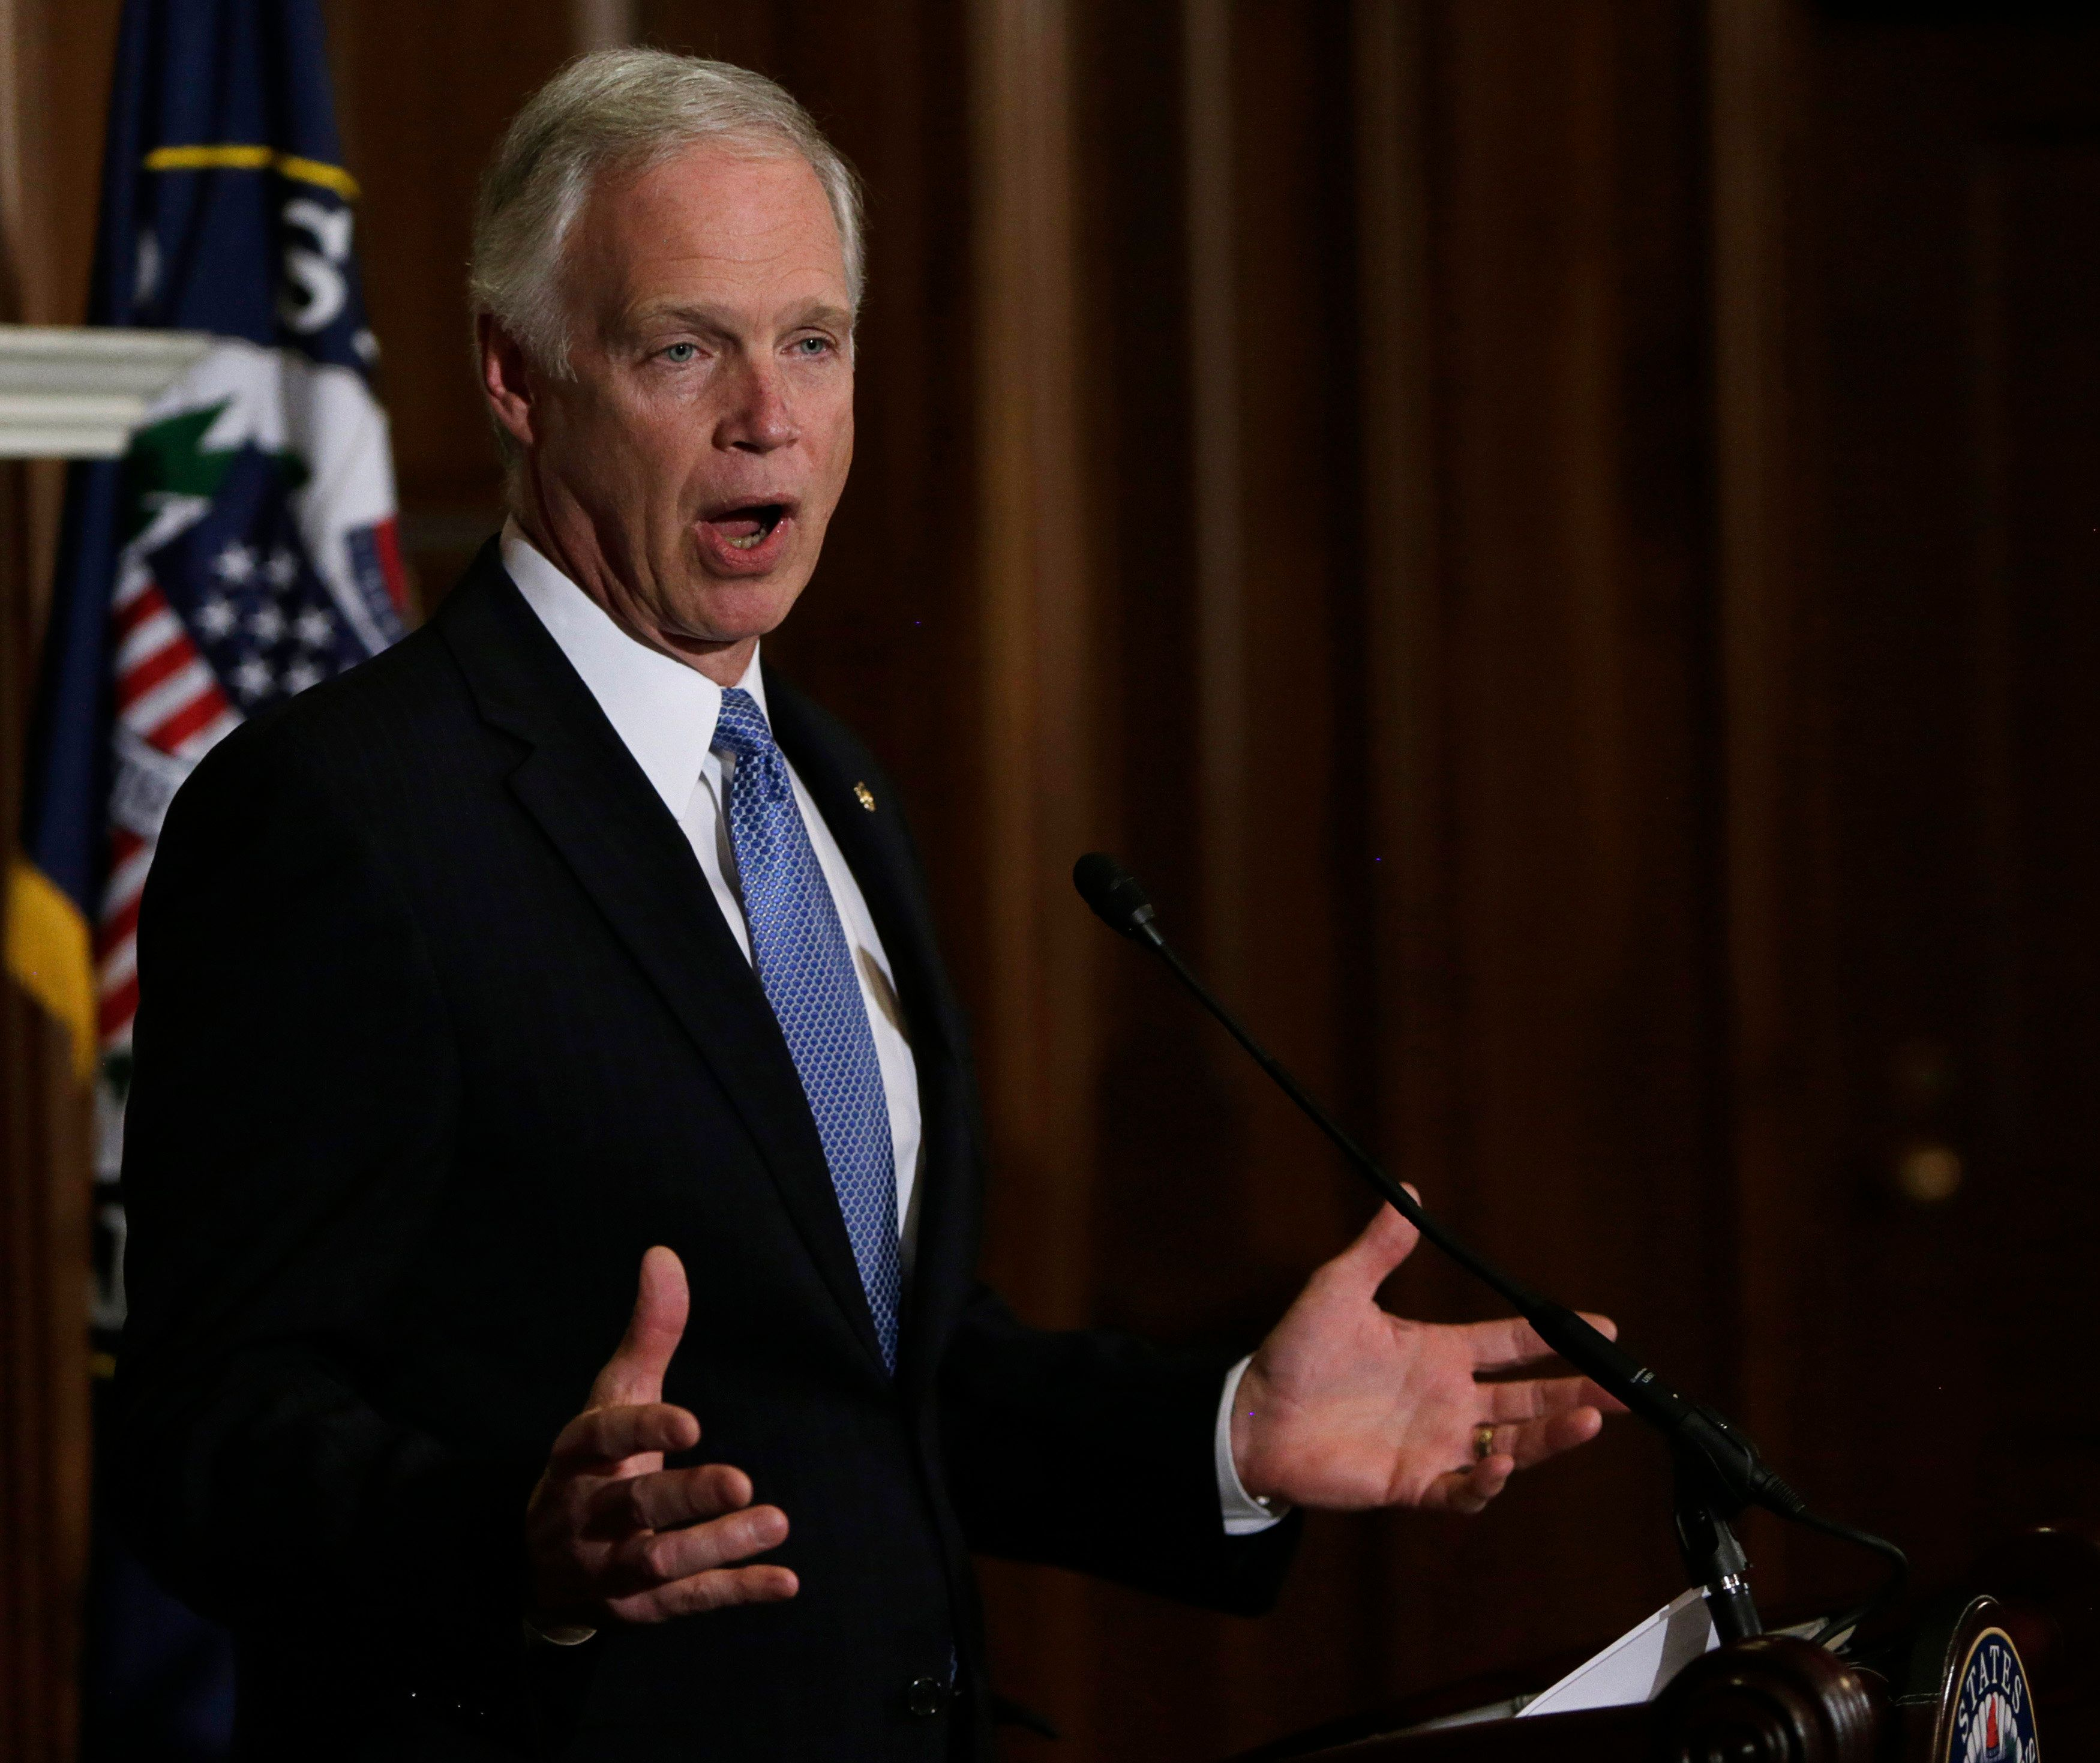 """U.S. Senator Ron Johnson (R-WI) speaks during a news conference on Capitol Hill in Washington January 6, 2014. Johnson planned to file a lawsuit on Monday challenging """"special treatment"""" for members of the U.S. Congress in the application of President Barack Obama's healthcare law. Johnson, of Wisconsin, wrote in the Wall Street Journal that the Obama administration exceeded its legal authority by arranging federal subsidies for members of Congress and their staff under the Affordable Care Act, known as Obamacare.  REUTERS/Gary Cameron    (UNITED STATES - Tags: POLITICS HEALTH)"""